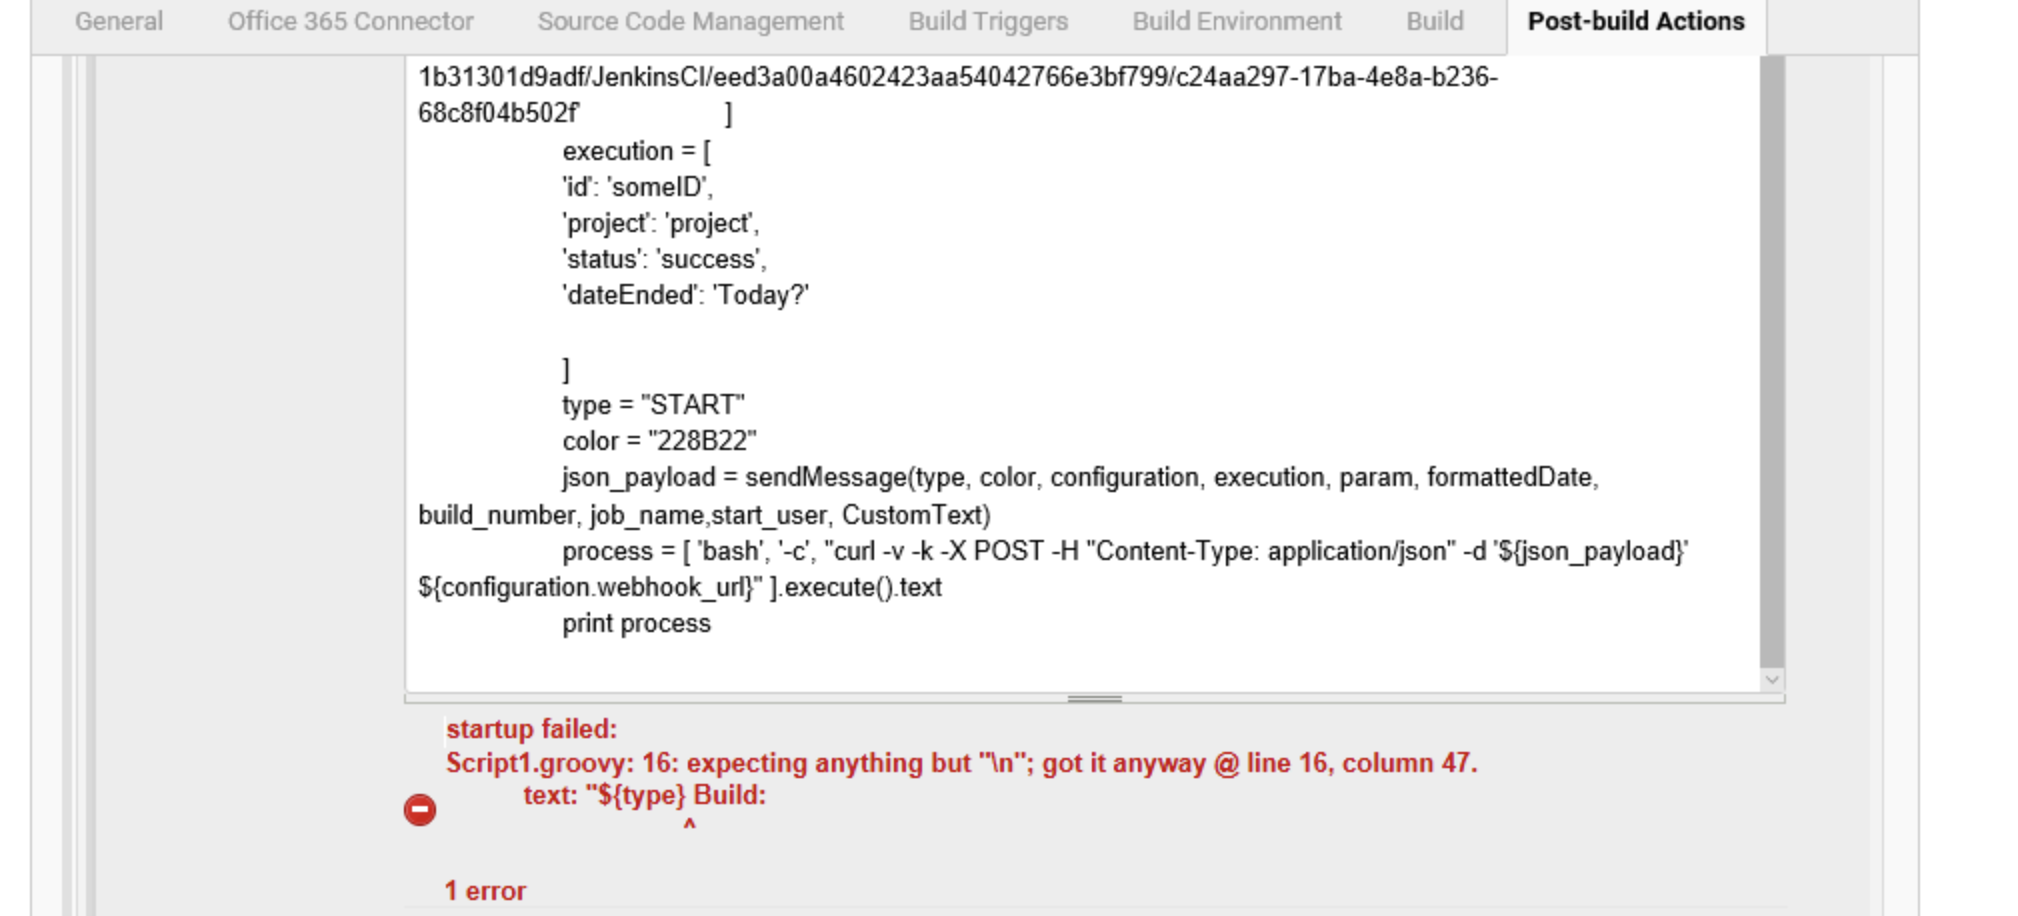 JENKINS-55474] \n in code with is merged doesn't reflect in Jenkins